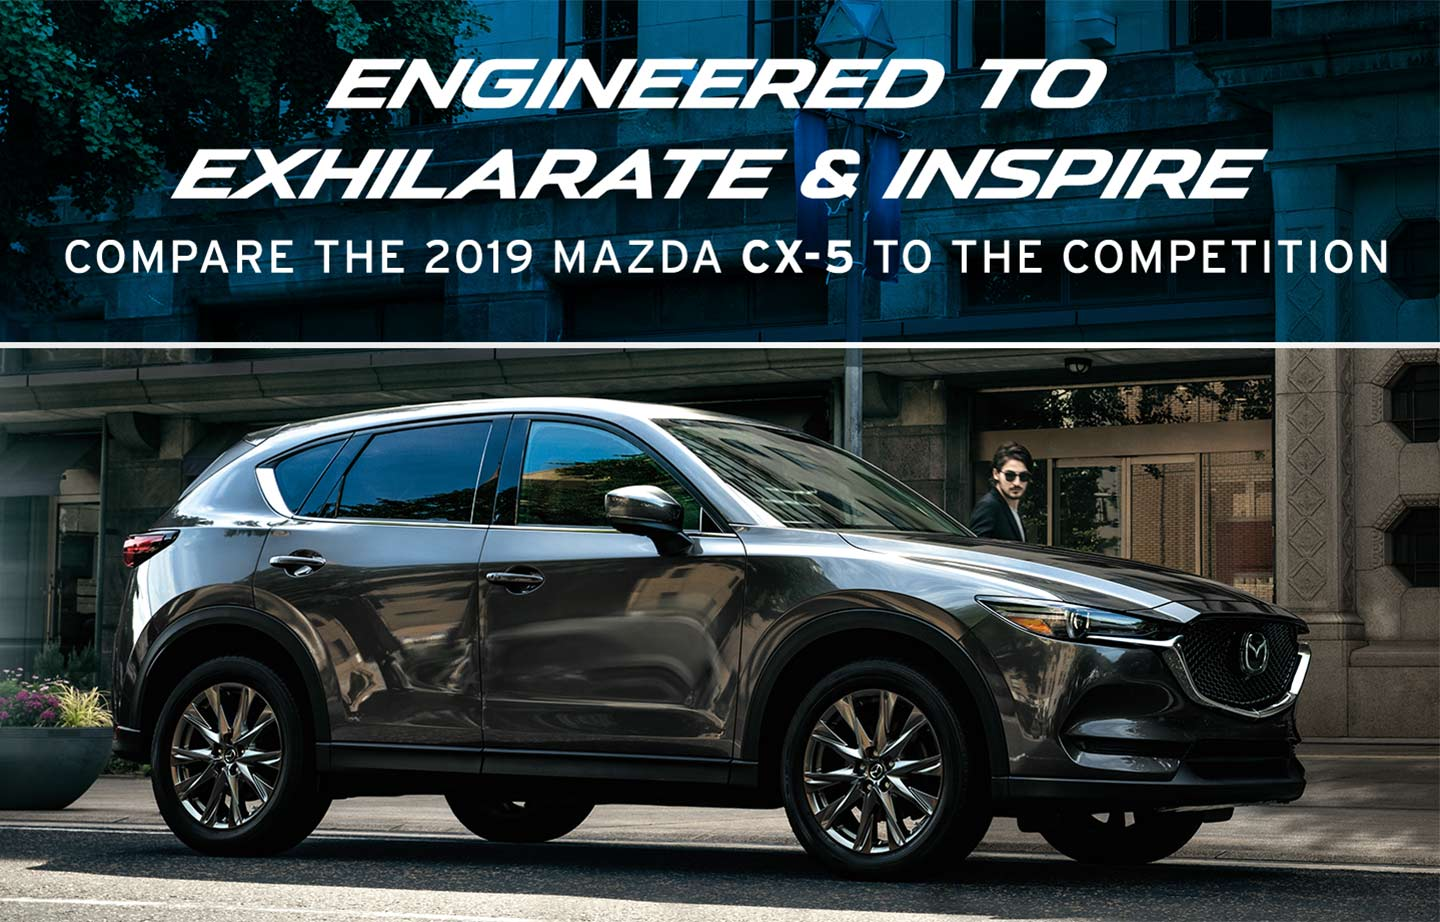 2019 MAZDA CX-5 COMPARISON COMPETITION OKLAHOMA CITY EDMOND NORMAN OK